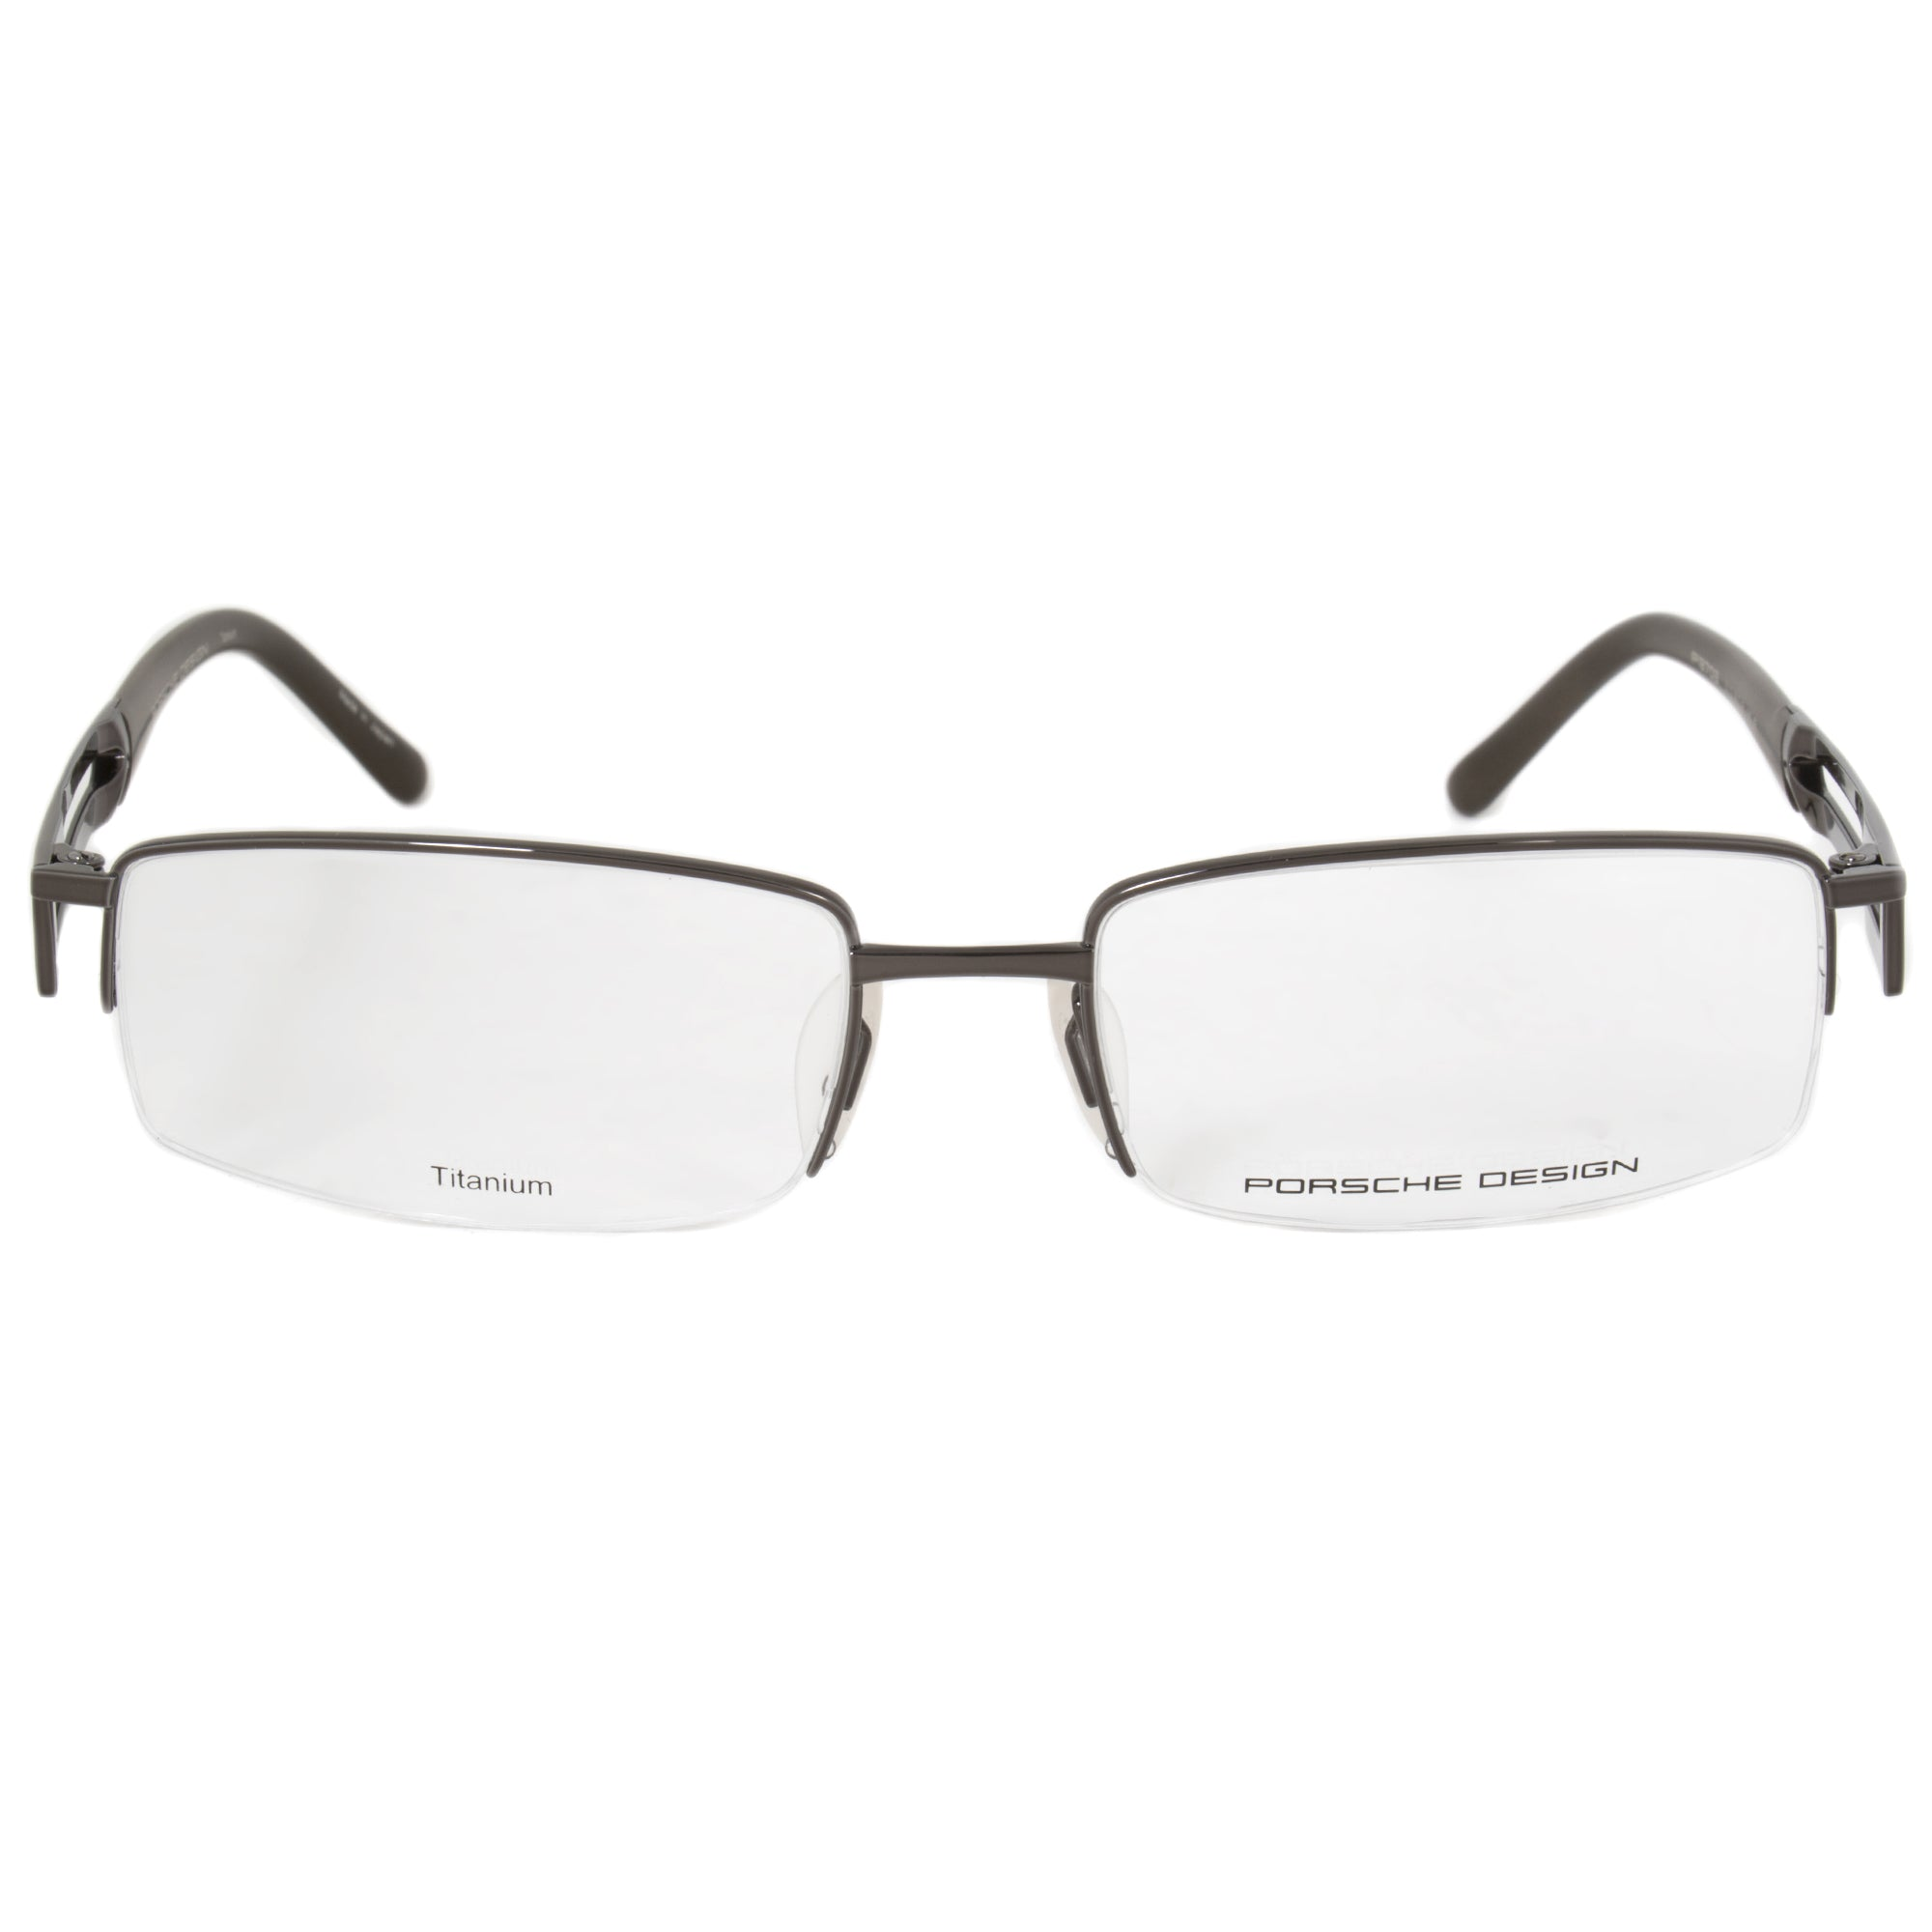 Porsche Design P8703 D Semi-Rimless Rectangle Eyeglasses for Men | Dar